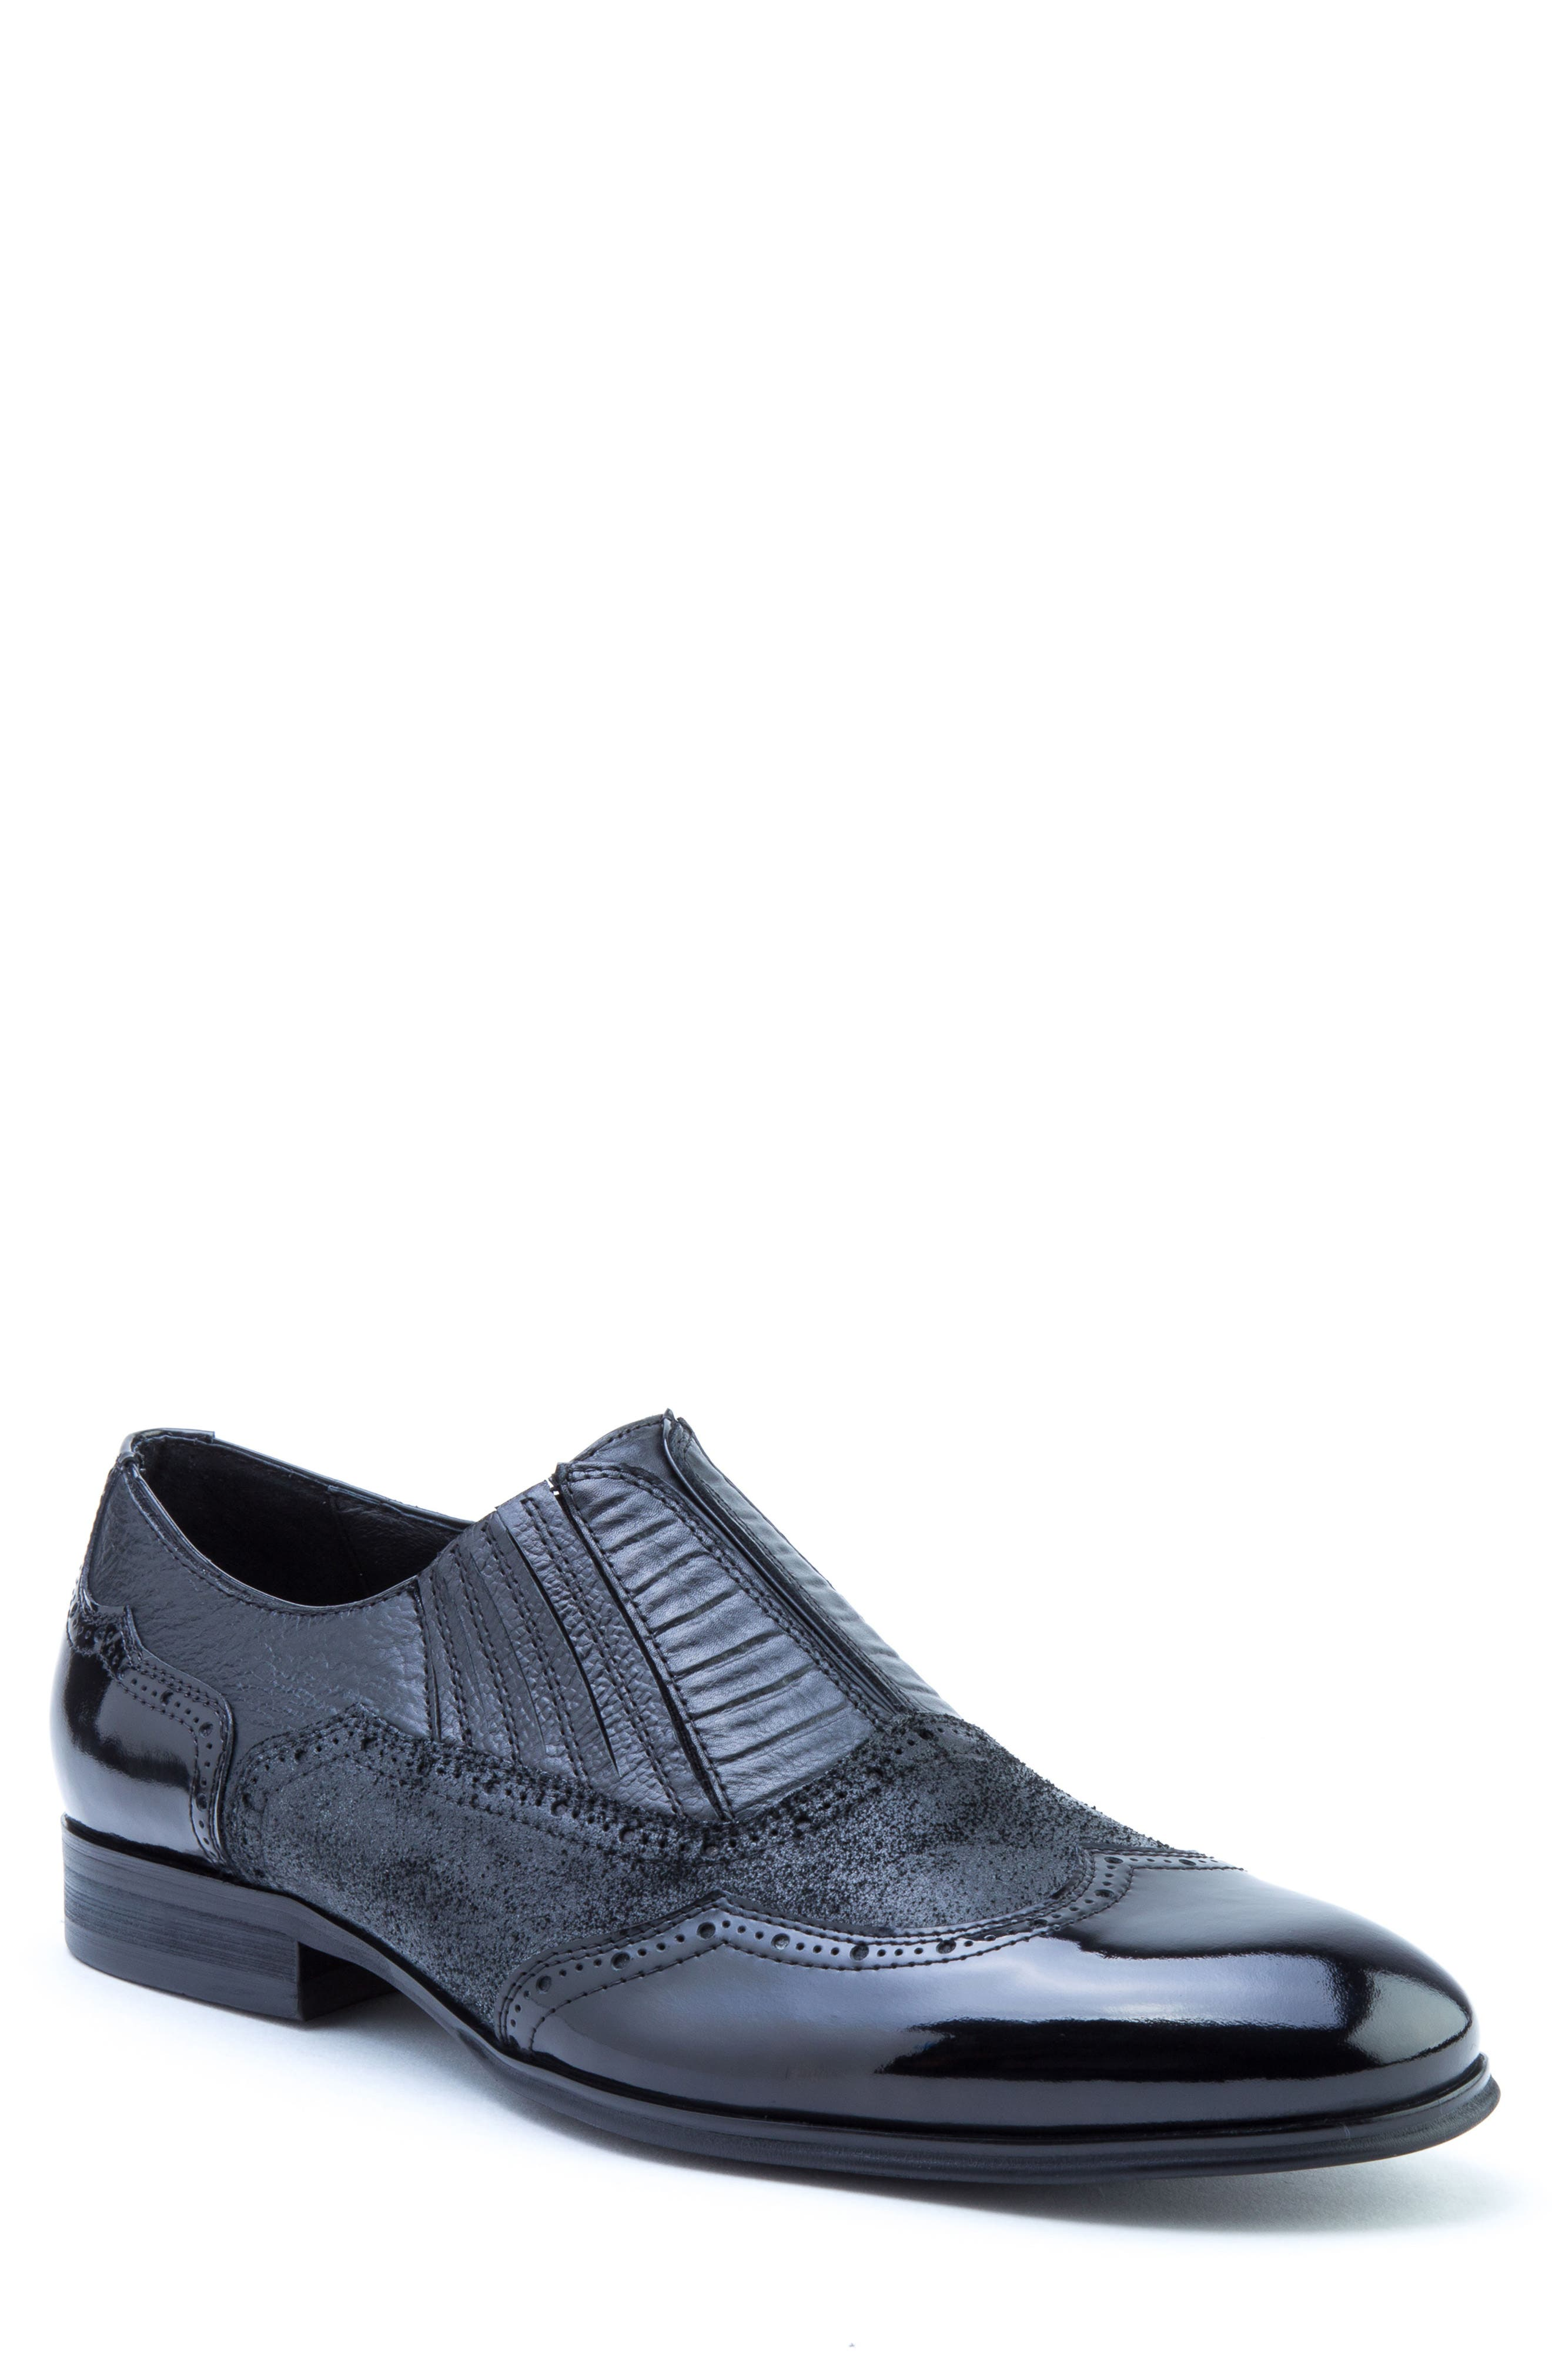 Warwick Wingtip,                         Main,                         color, Black Leather